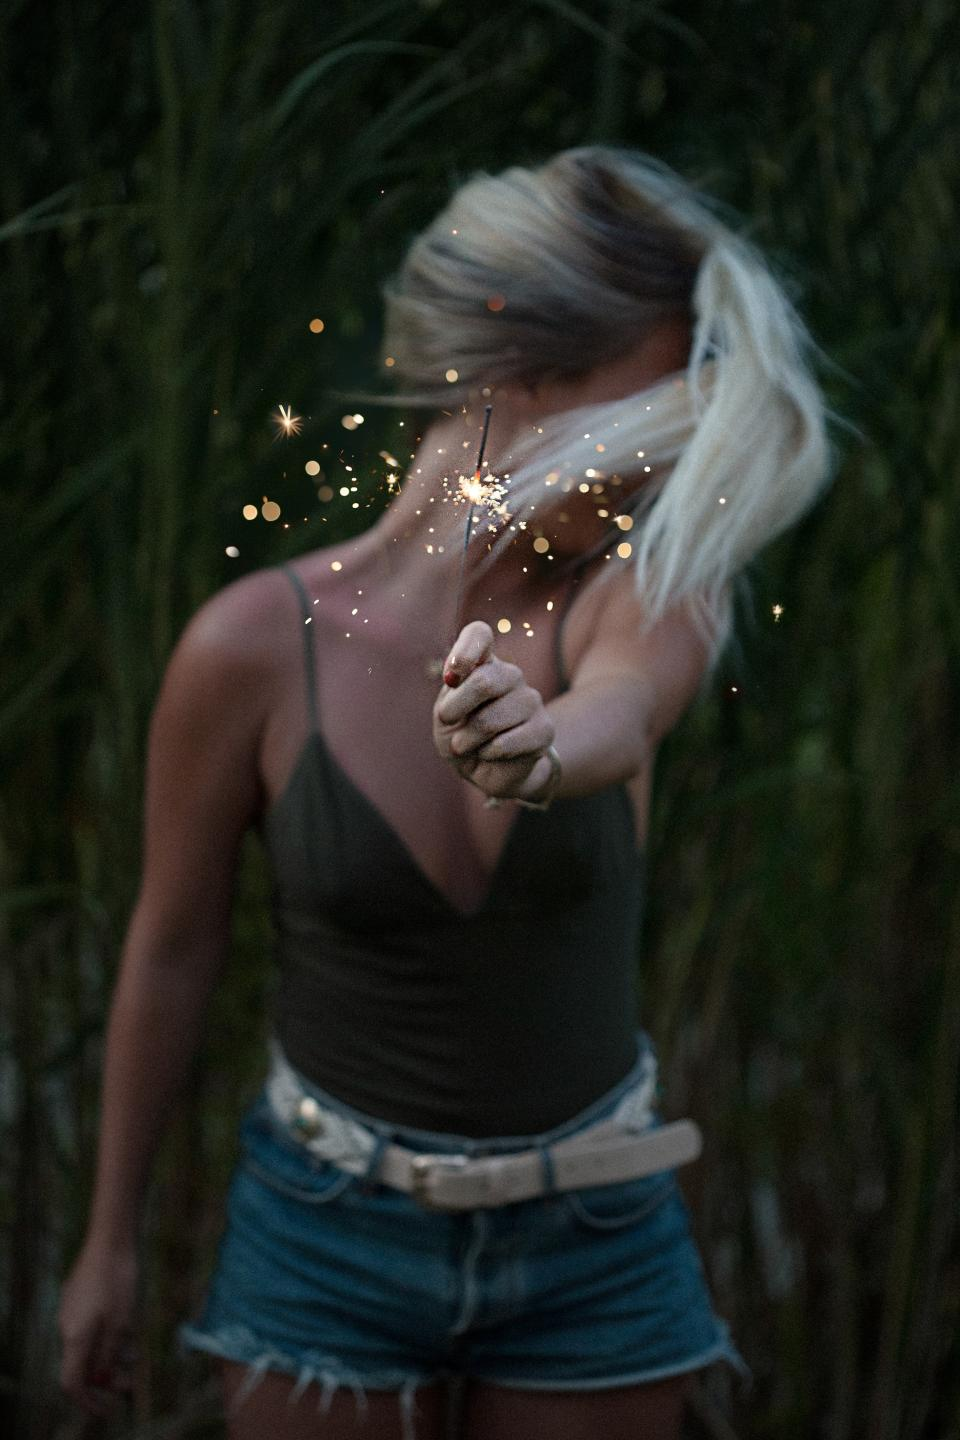 woman girl lady people stand fashion style hold out sparklers fireworks sparkle crackle sparks light orbs celebrate field leaves still bokeh beauty